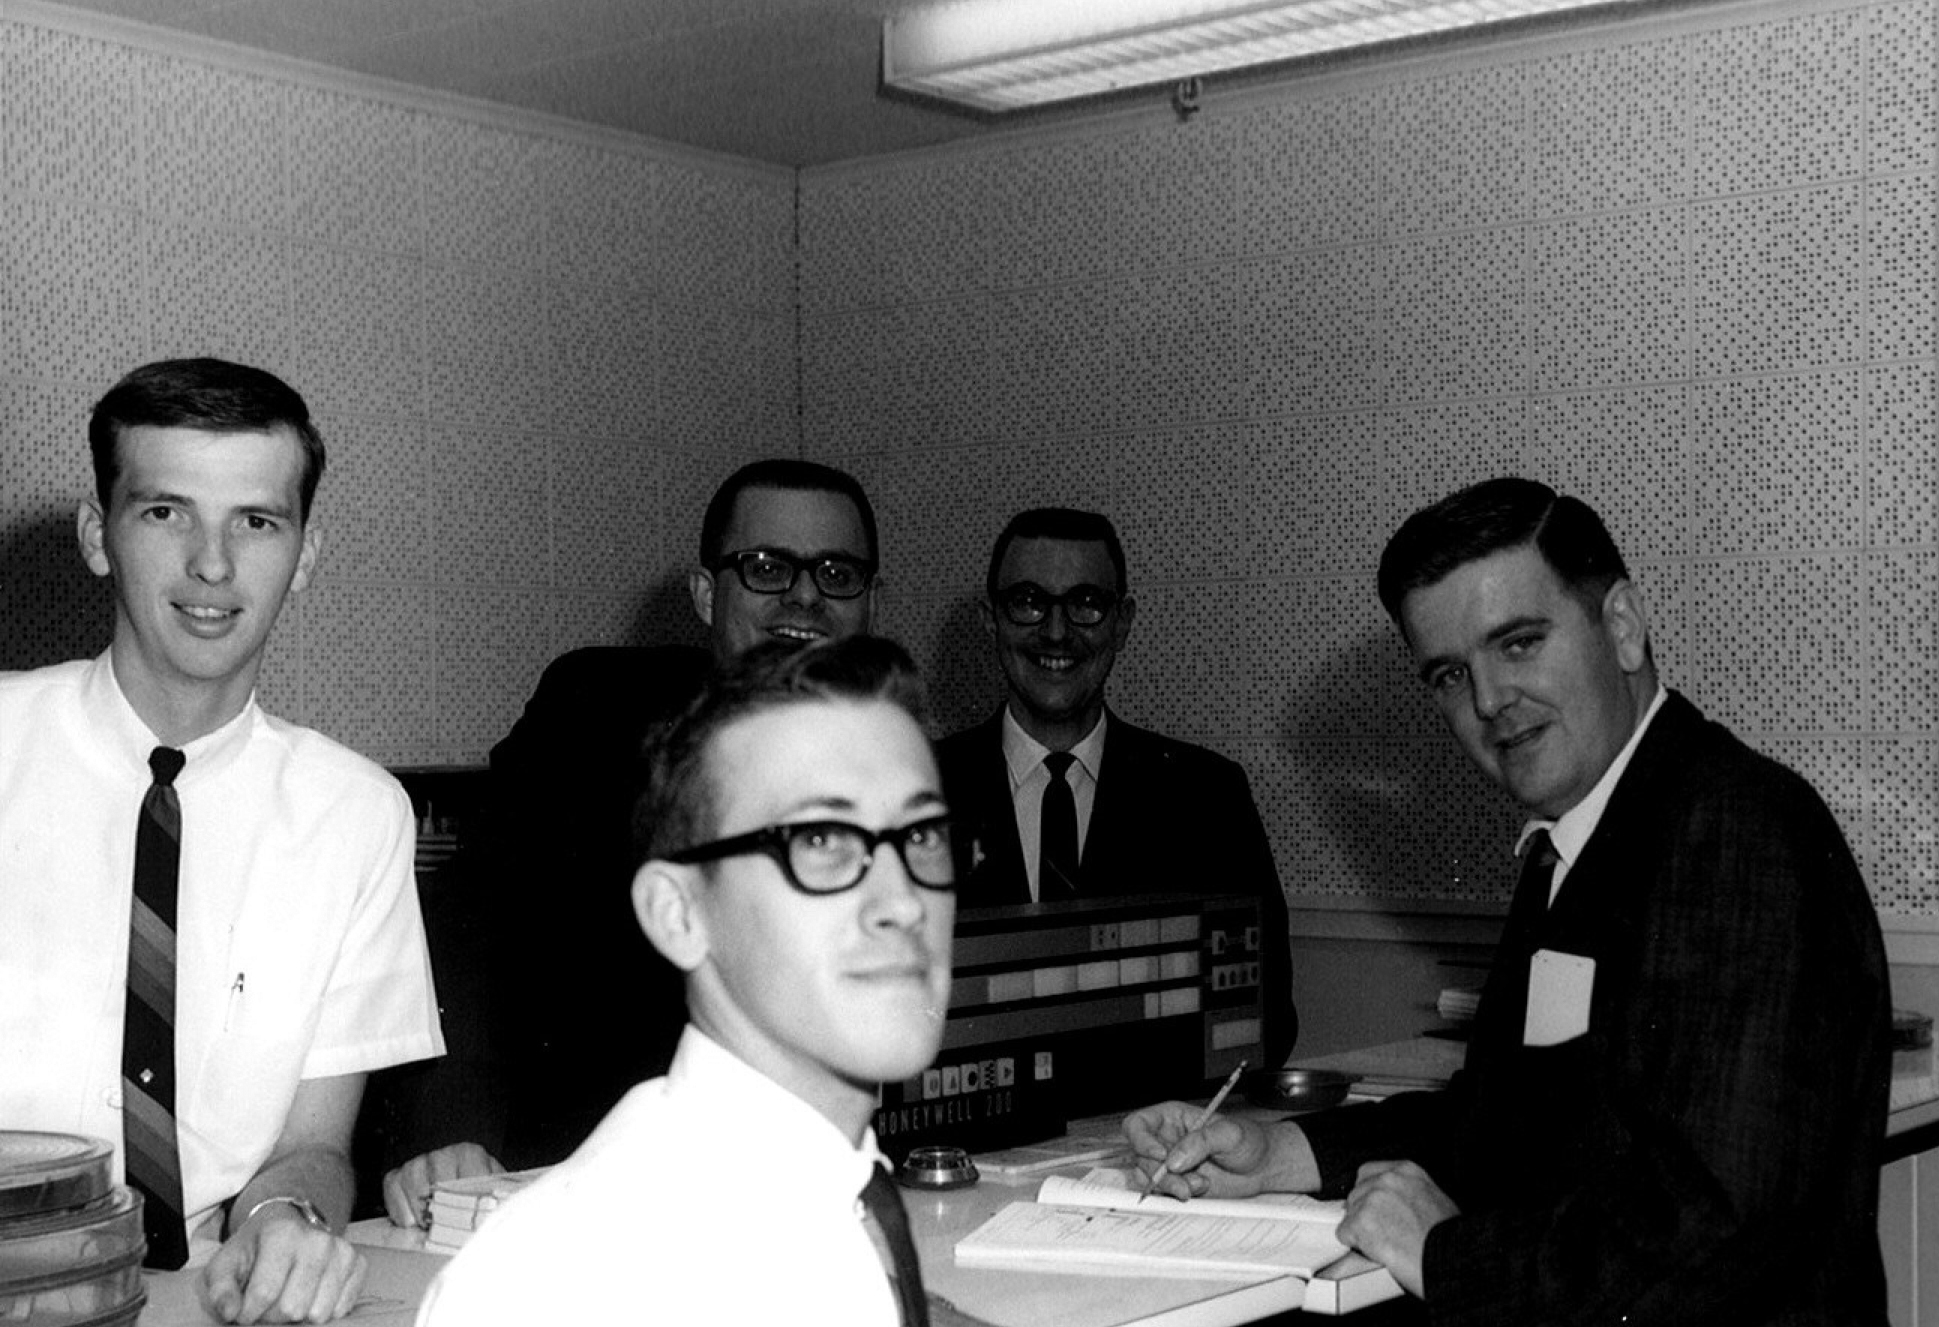 1960s, group of man